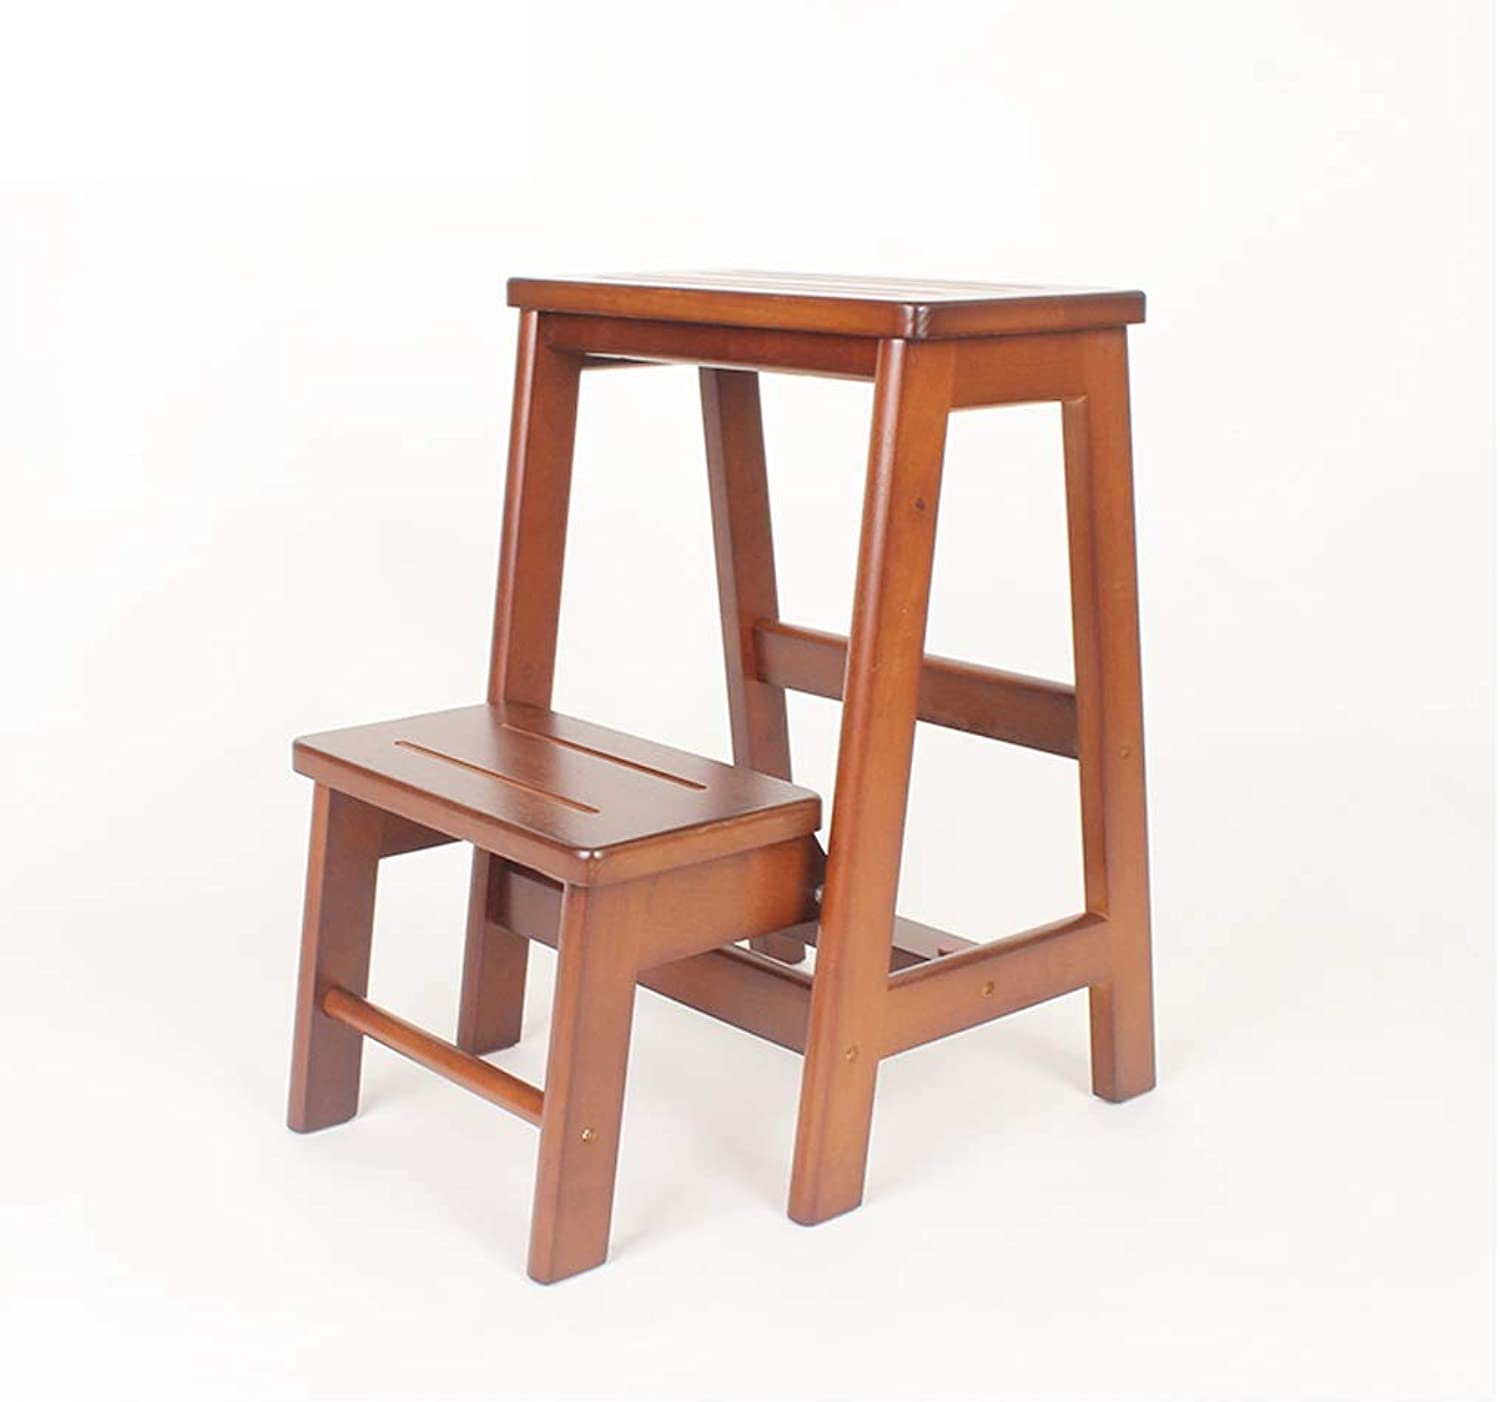 NEVYLadder Stools, Rubber Wood Thickening Ladder Home Step Stool 2 3 Steps, Multifunction Folding Chairs Nonslip Stable (color   BROWN, Size   2 layers)